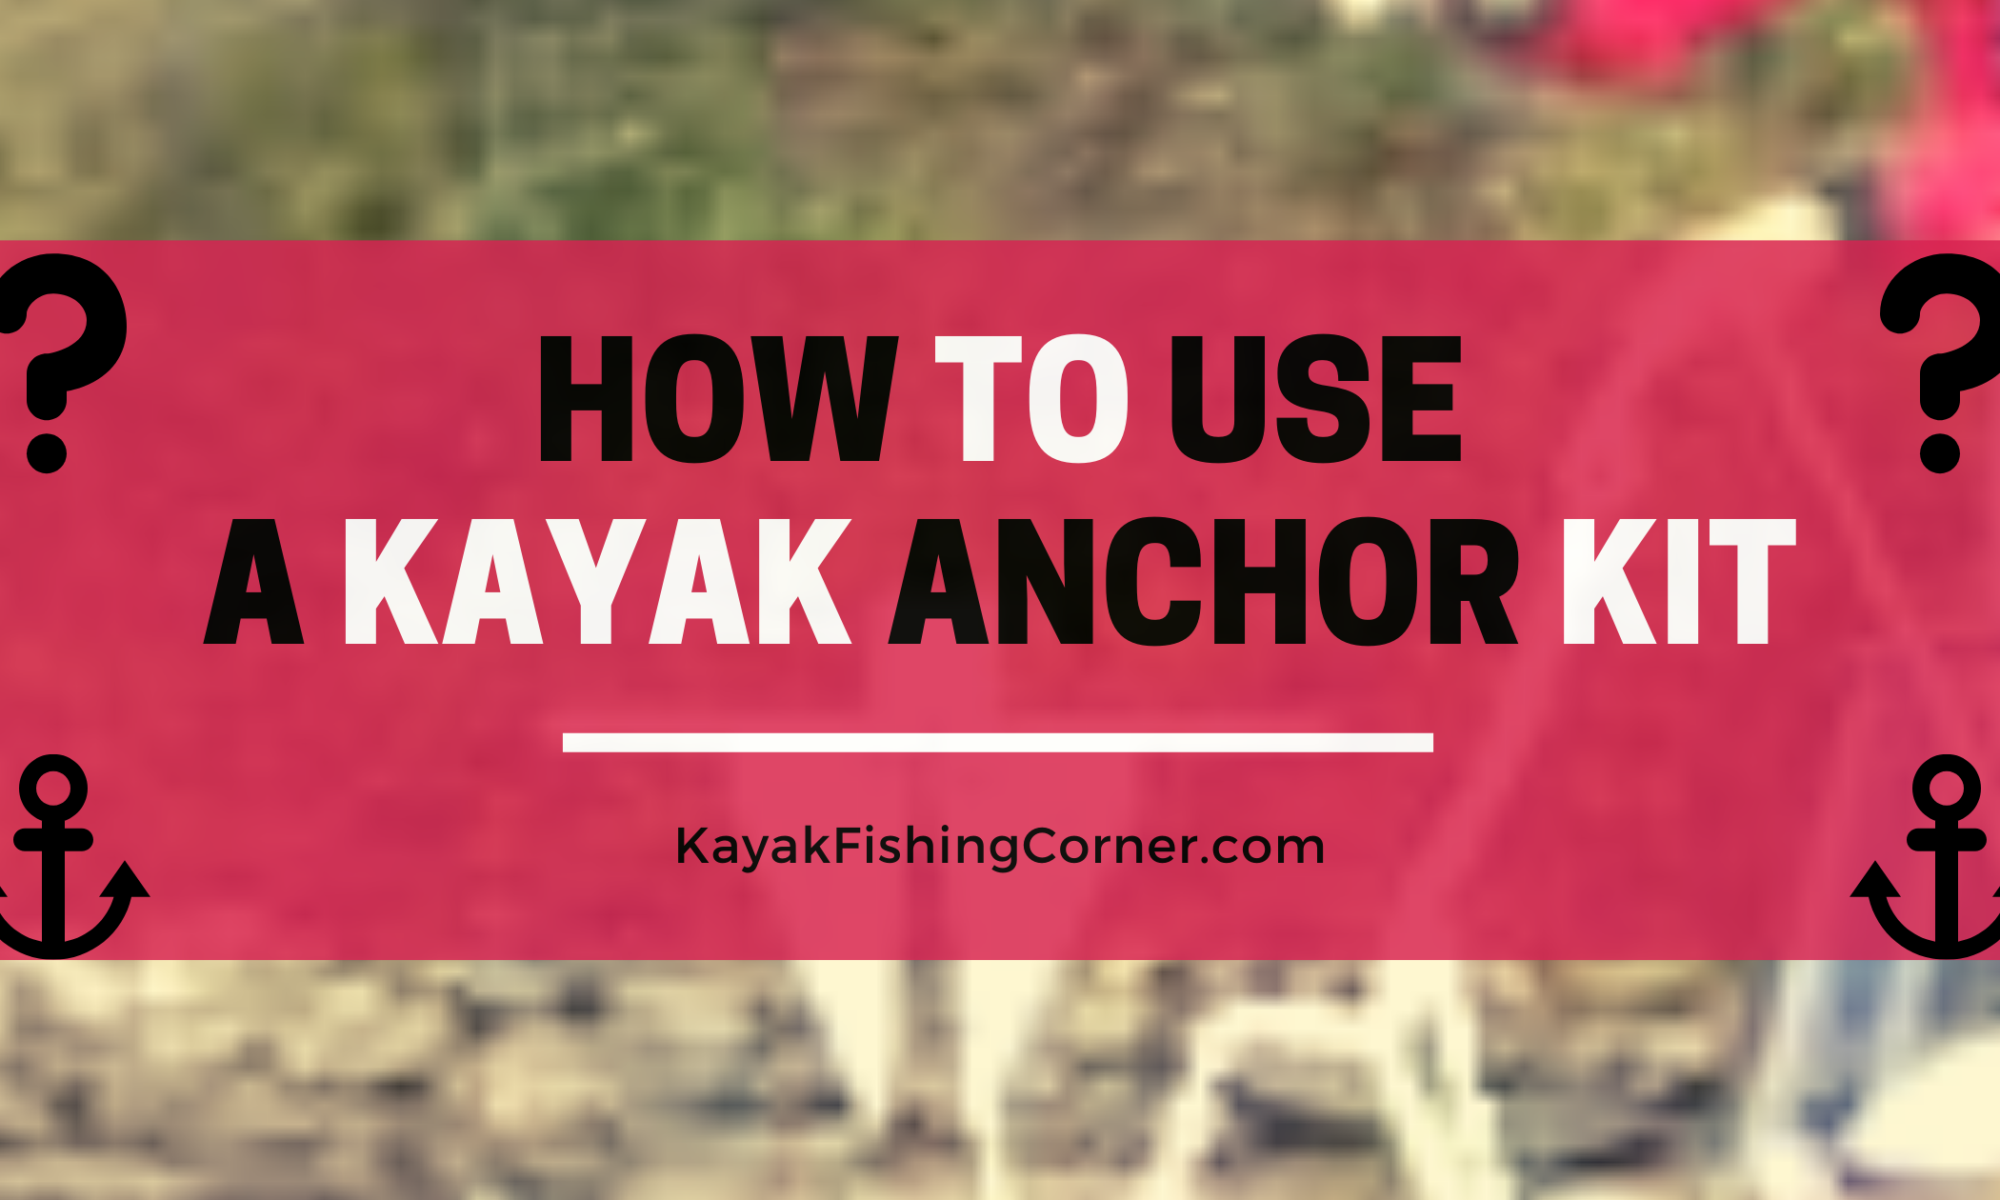 How to Use a Kayak Anchor Kit